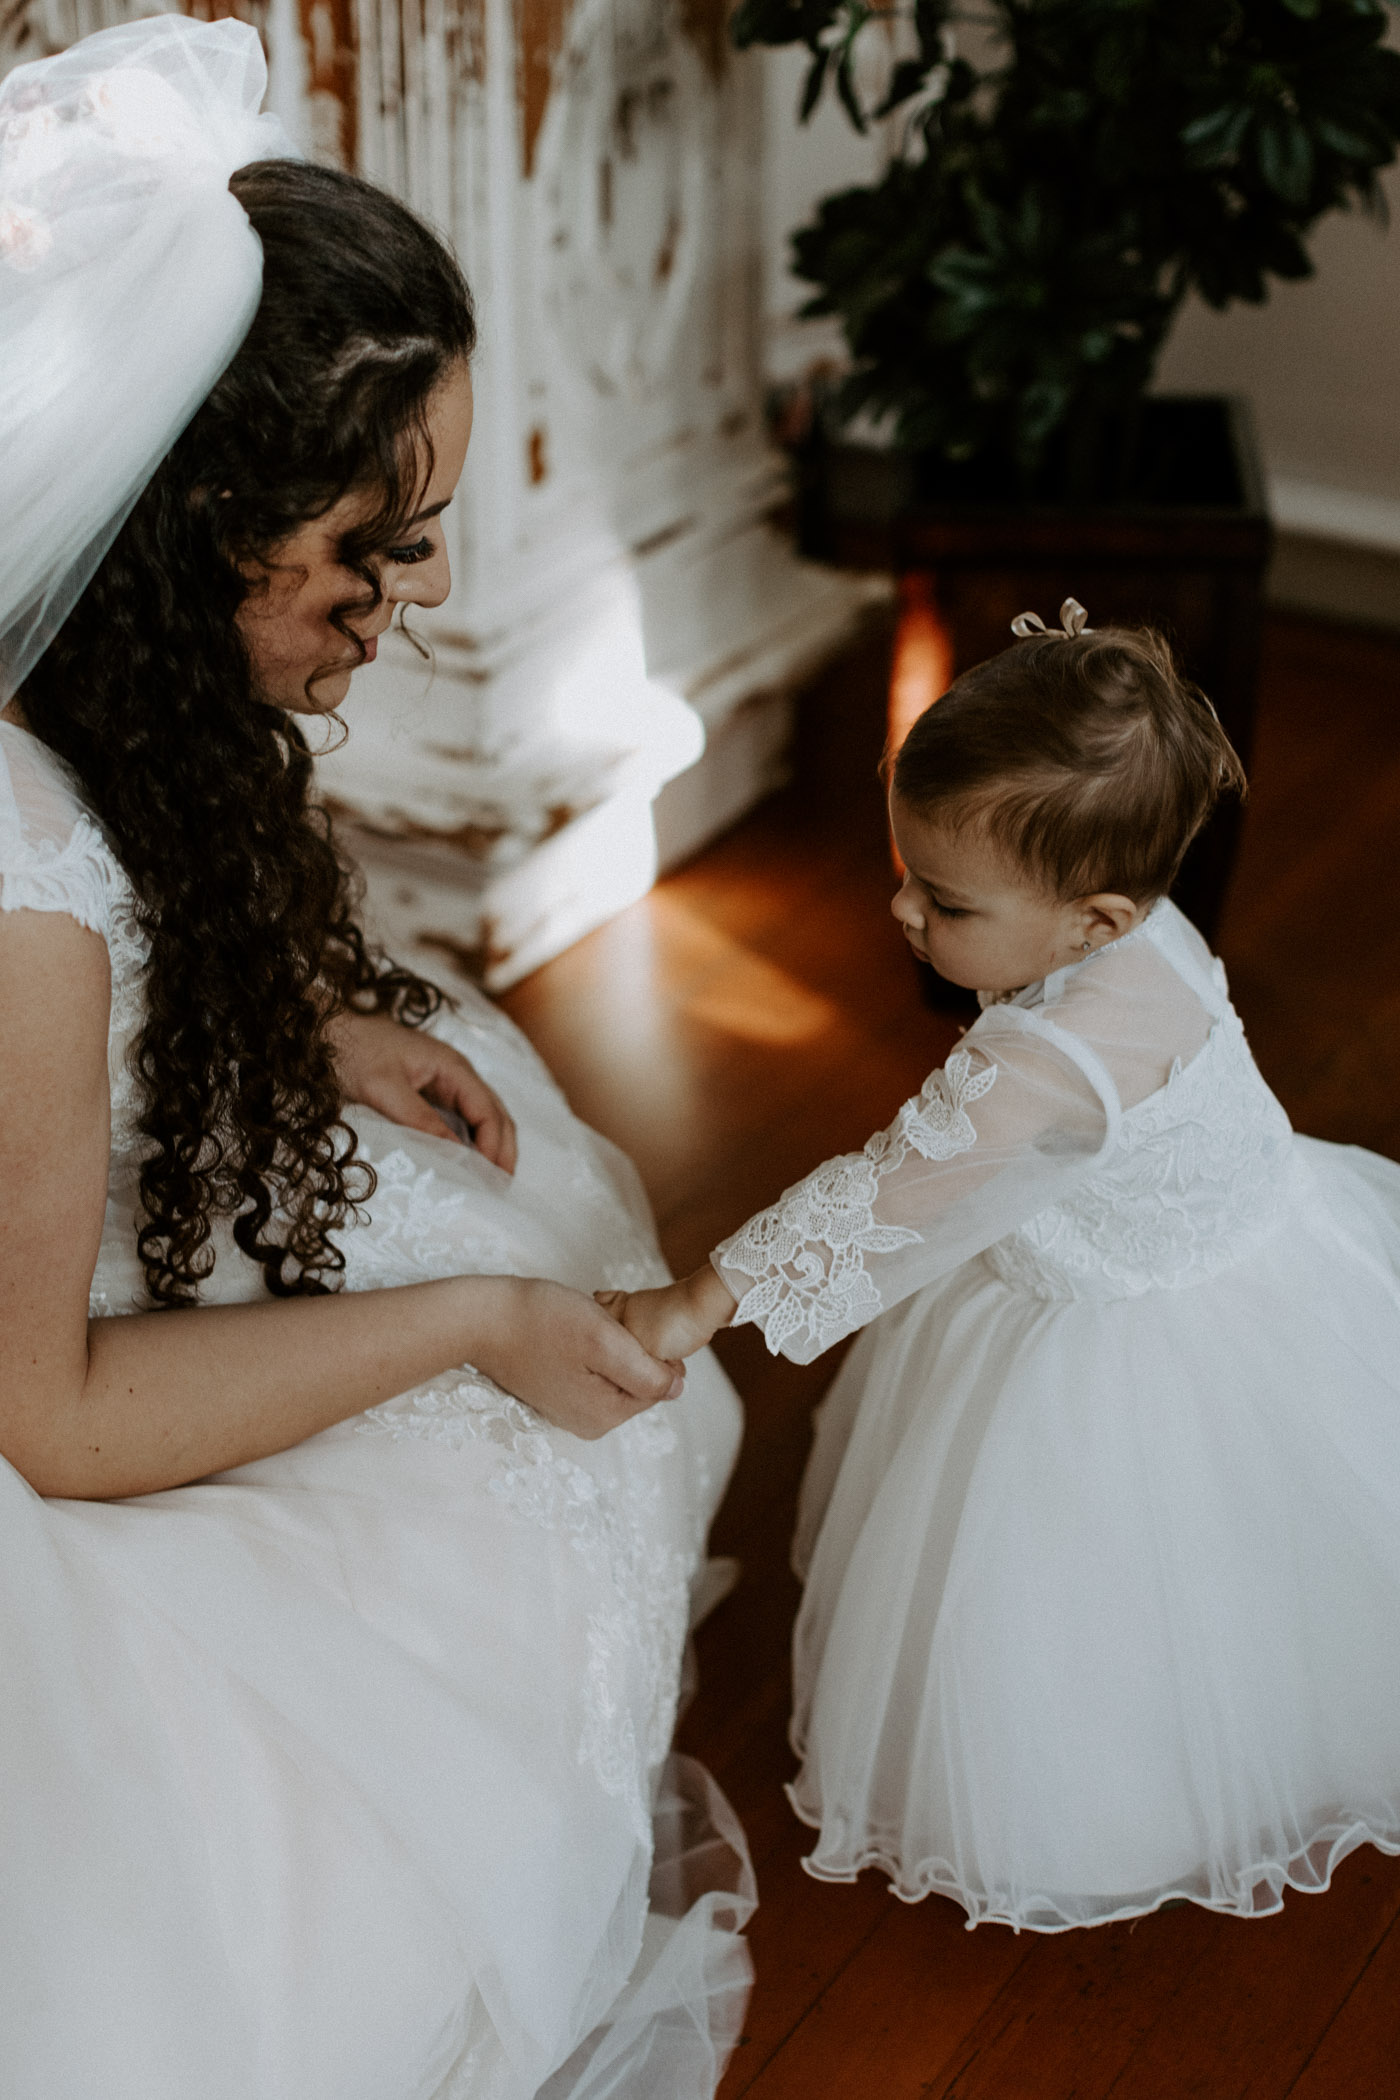 Bride playing with adorable flower girl before wedding ceremony starts